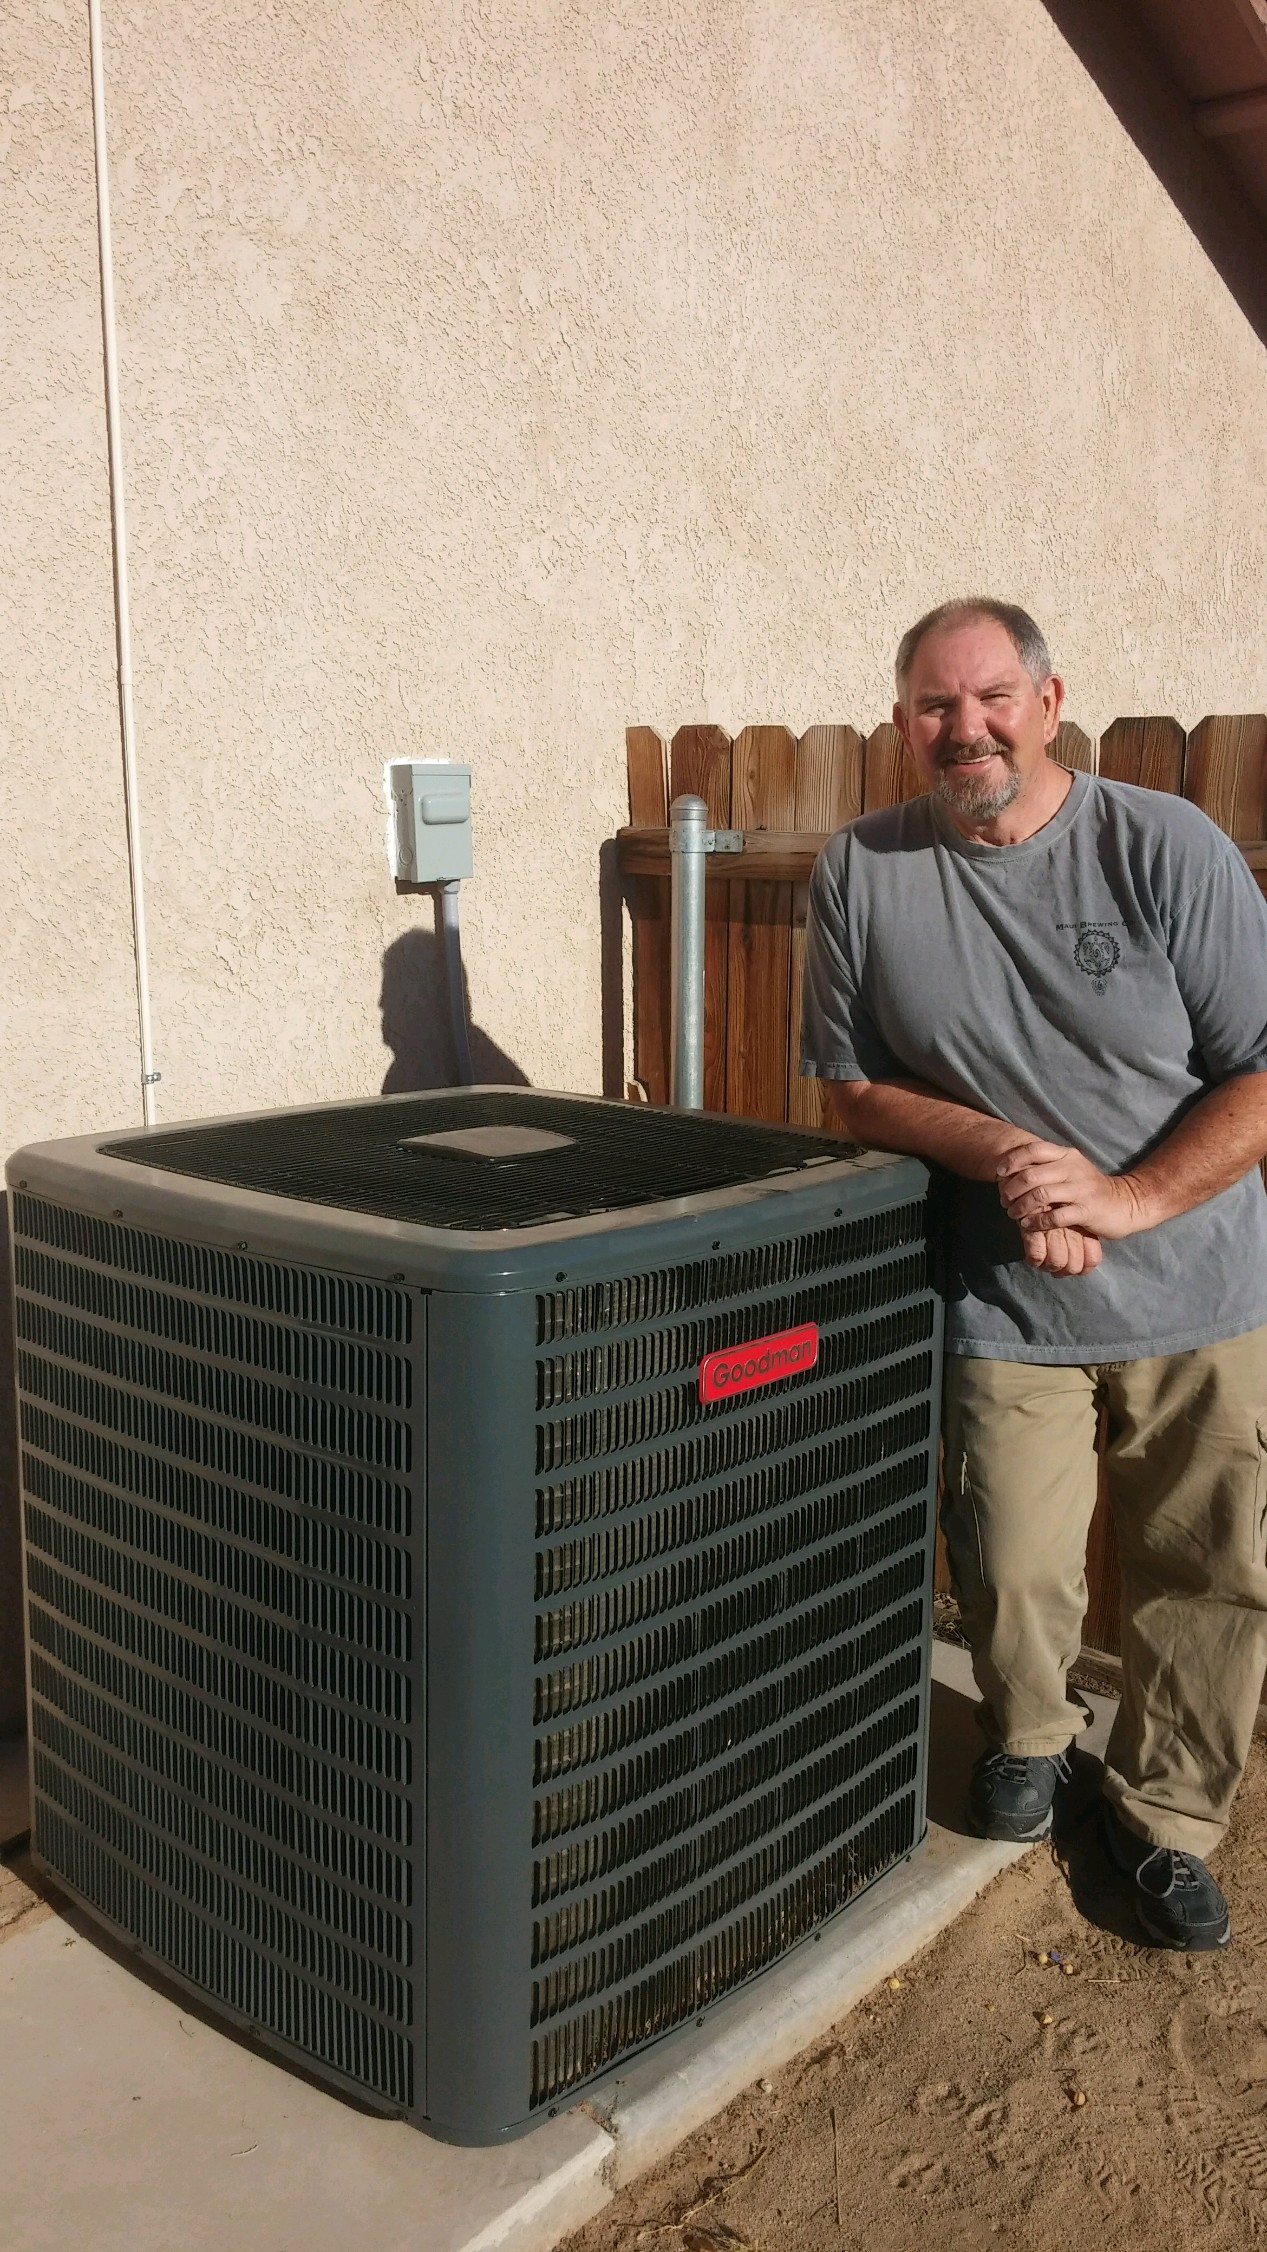 Aace's Heating, Air Conditioning image 2